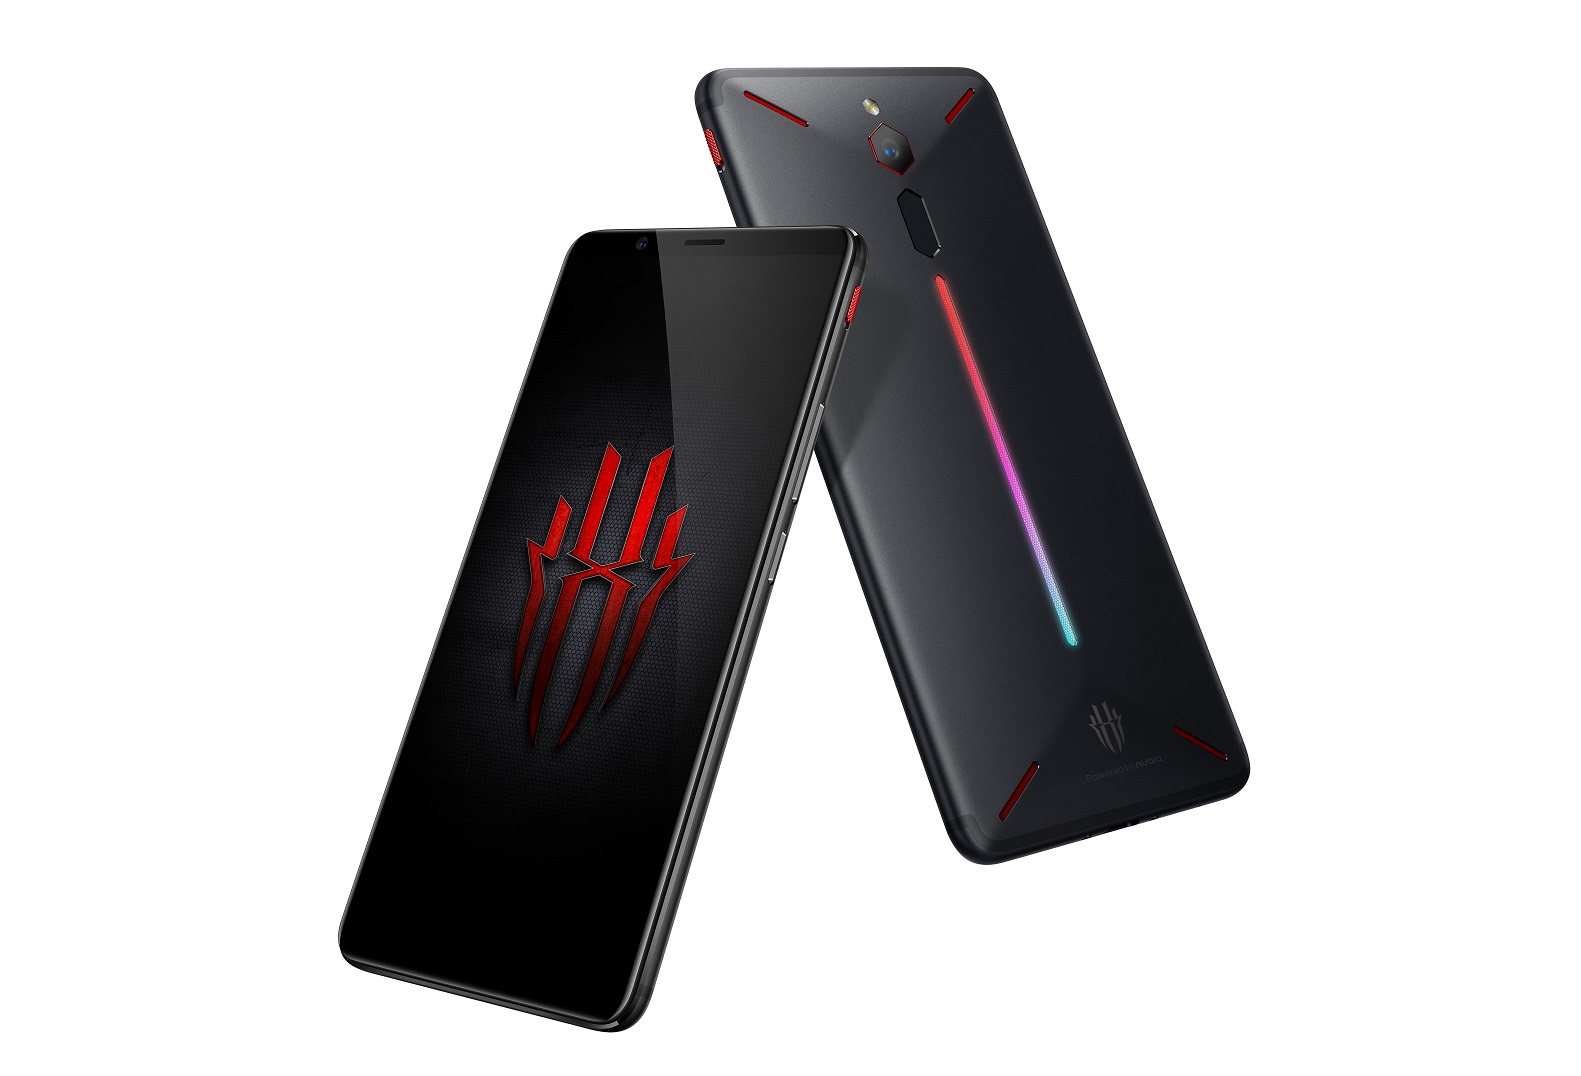 Nubia Red Magic gaming smartphone announced with glowing LED